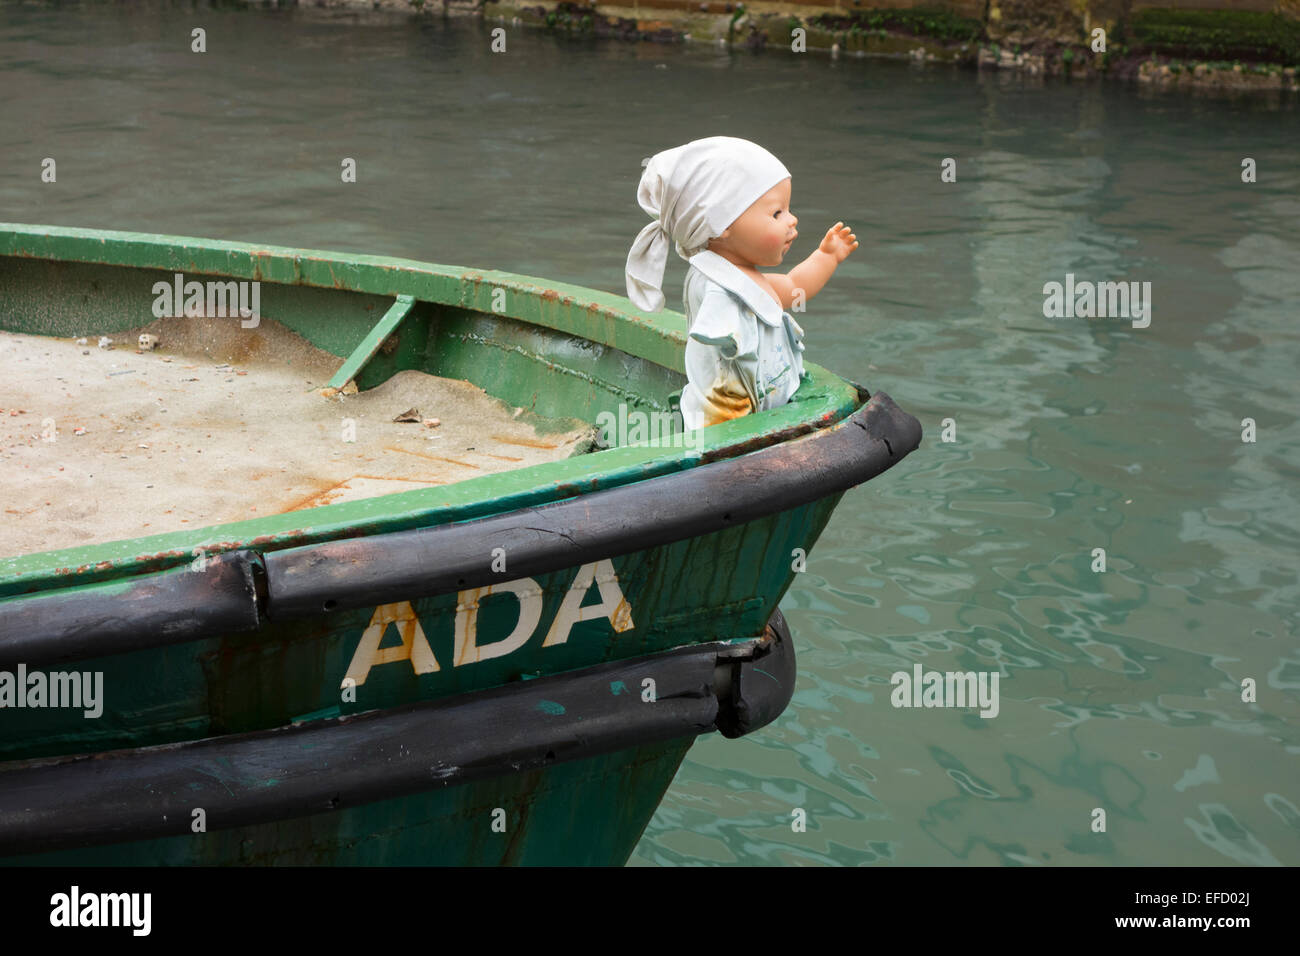 Baby Doll as boats figurehead - Stock Image